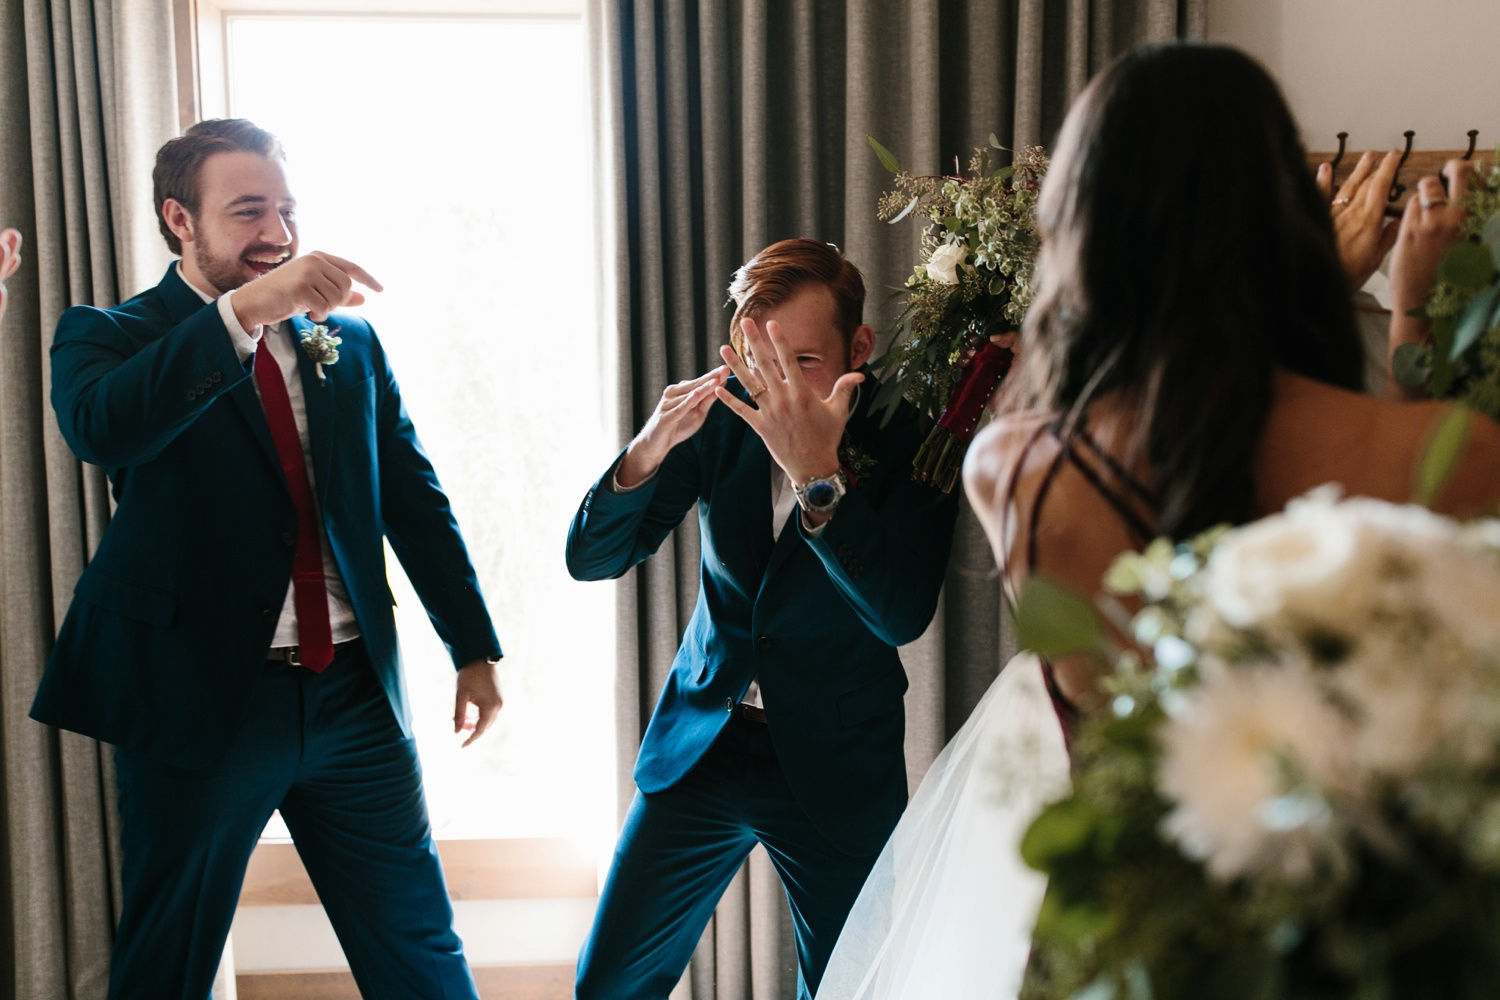 Grant + Lysette | a vibrant, deep burgundy and navy, and mixed metals wedding at Hidden Pines Chapel by North Texas Wedding Photographer Rachel Meagan Photography 113